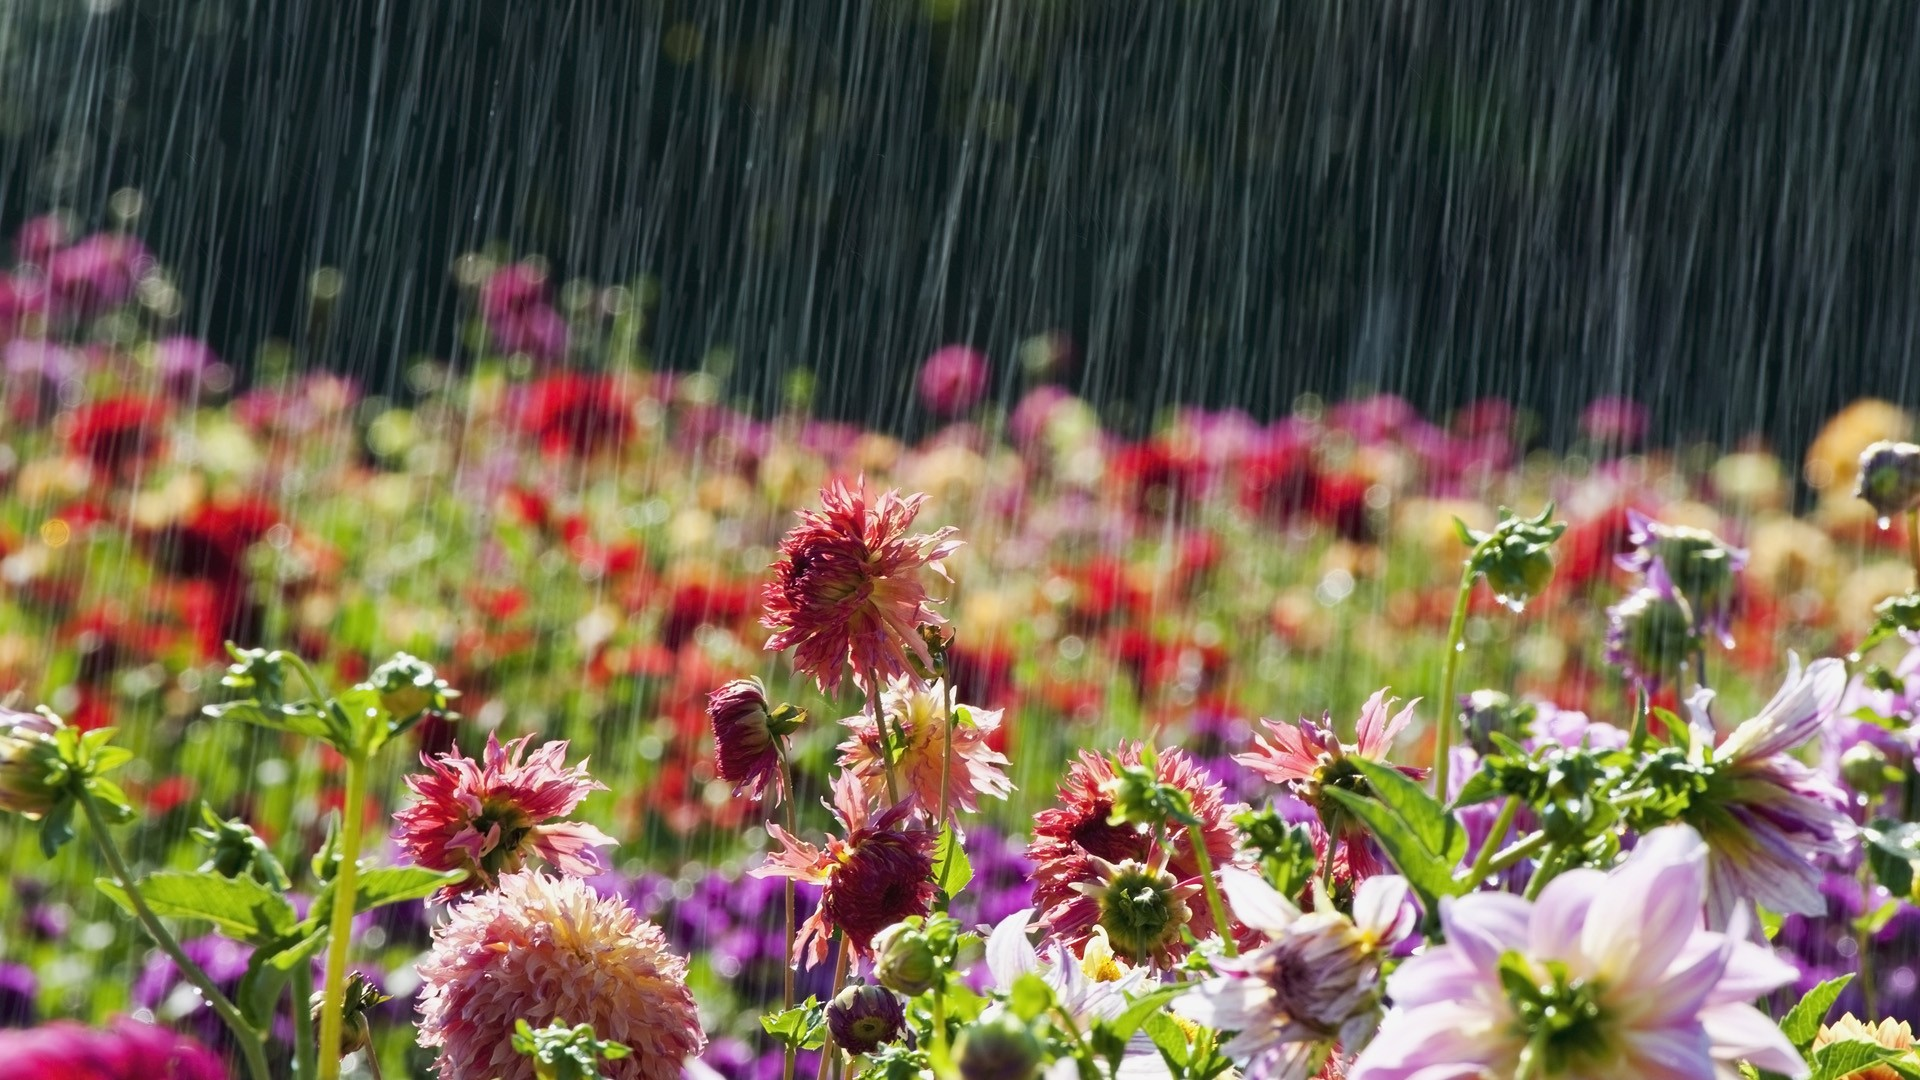 Beautiful flowers in rain latest wallpaper hd wallpaper rainy season hd wallpapers rain makes our life most beautiful rainy season izmirmasajfo